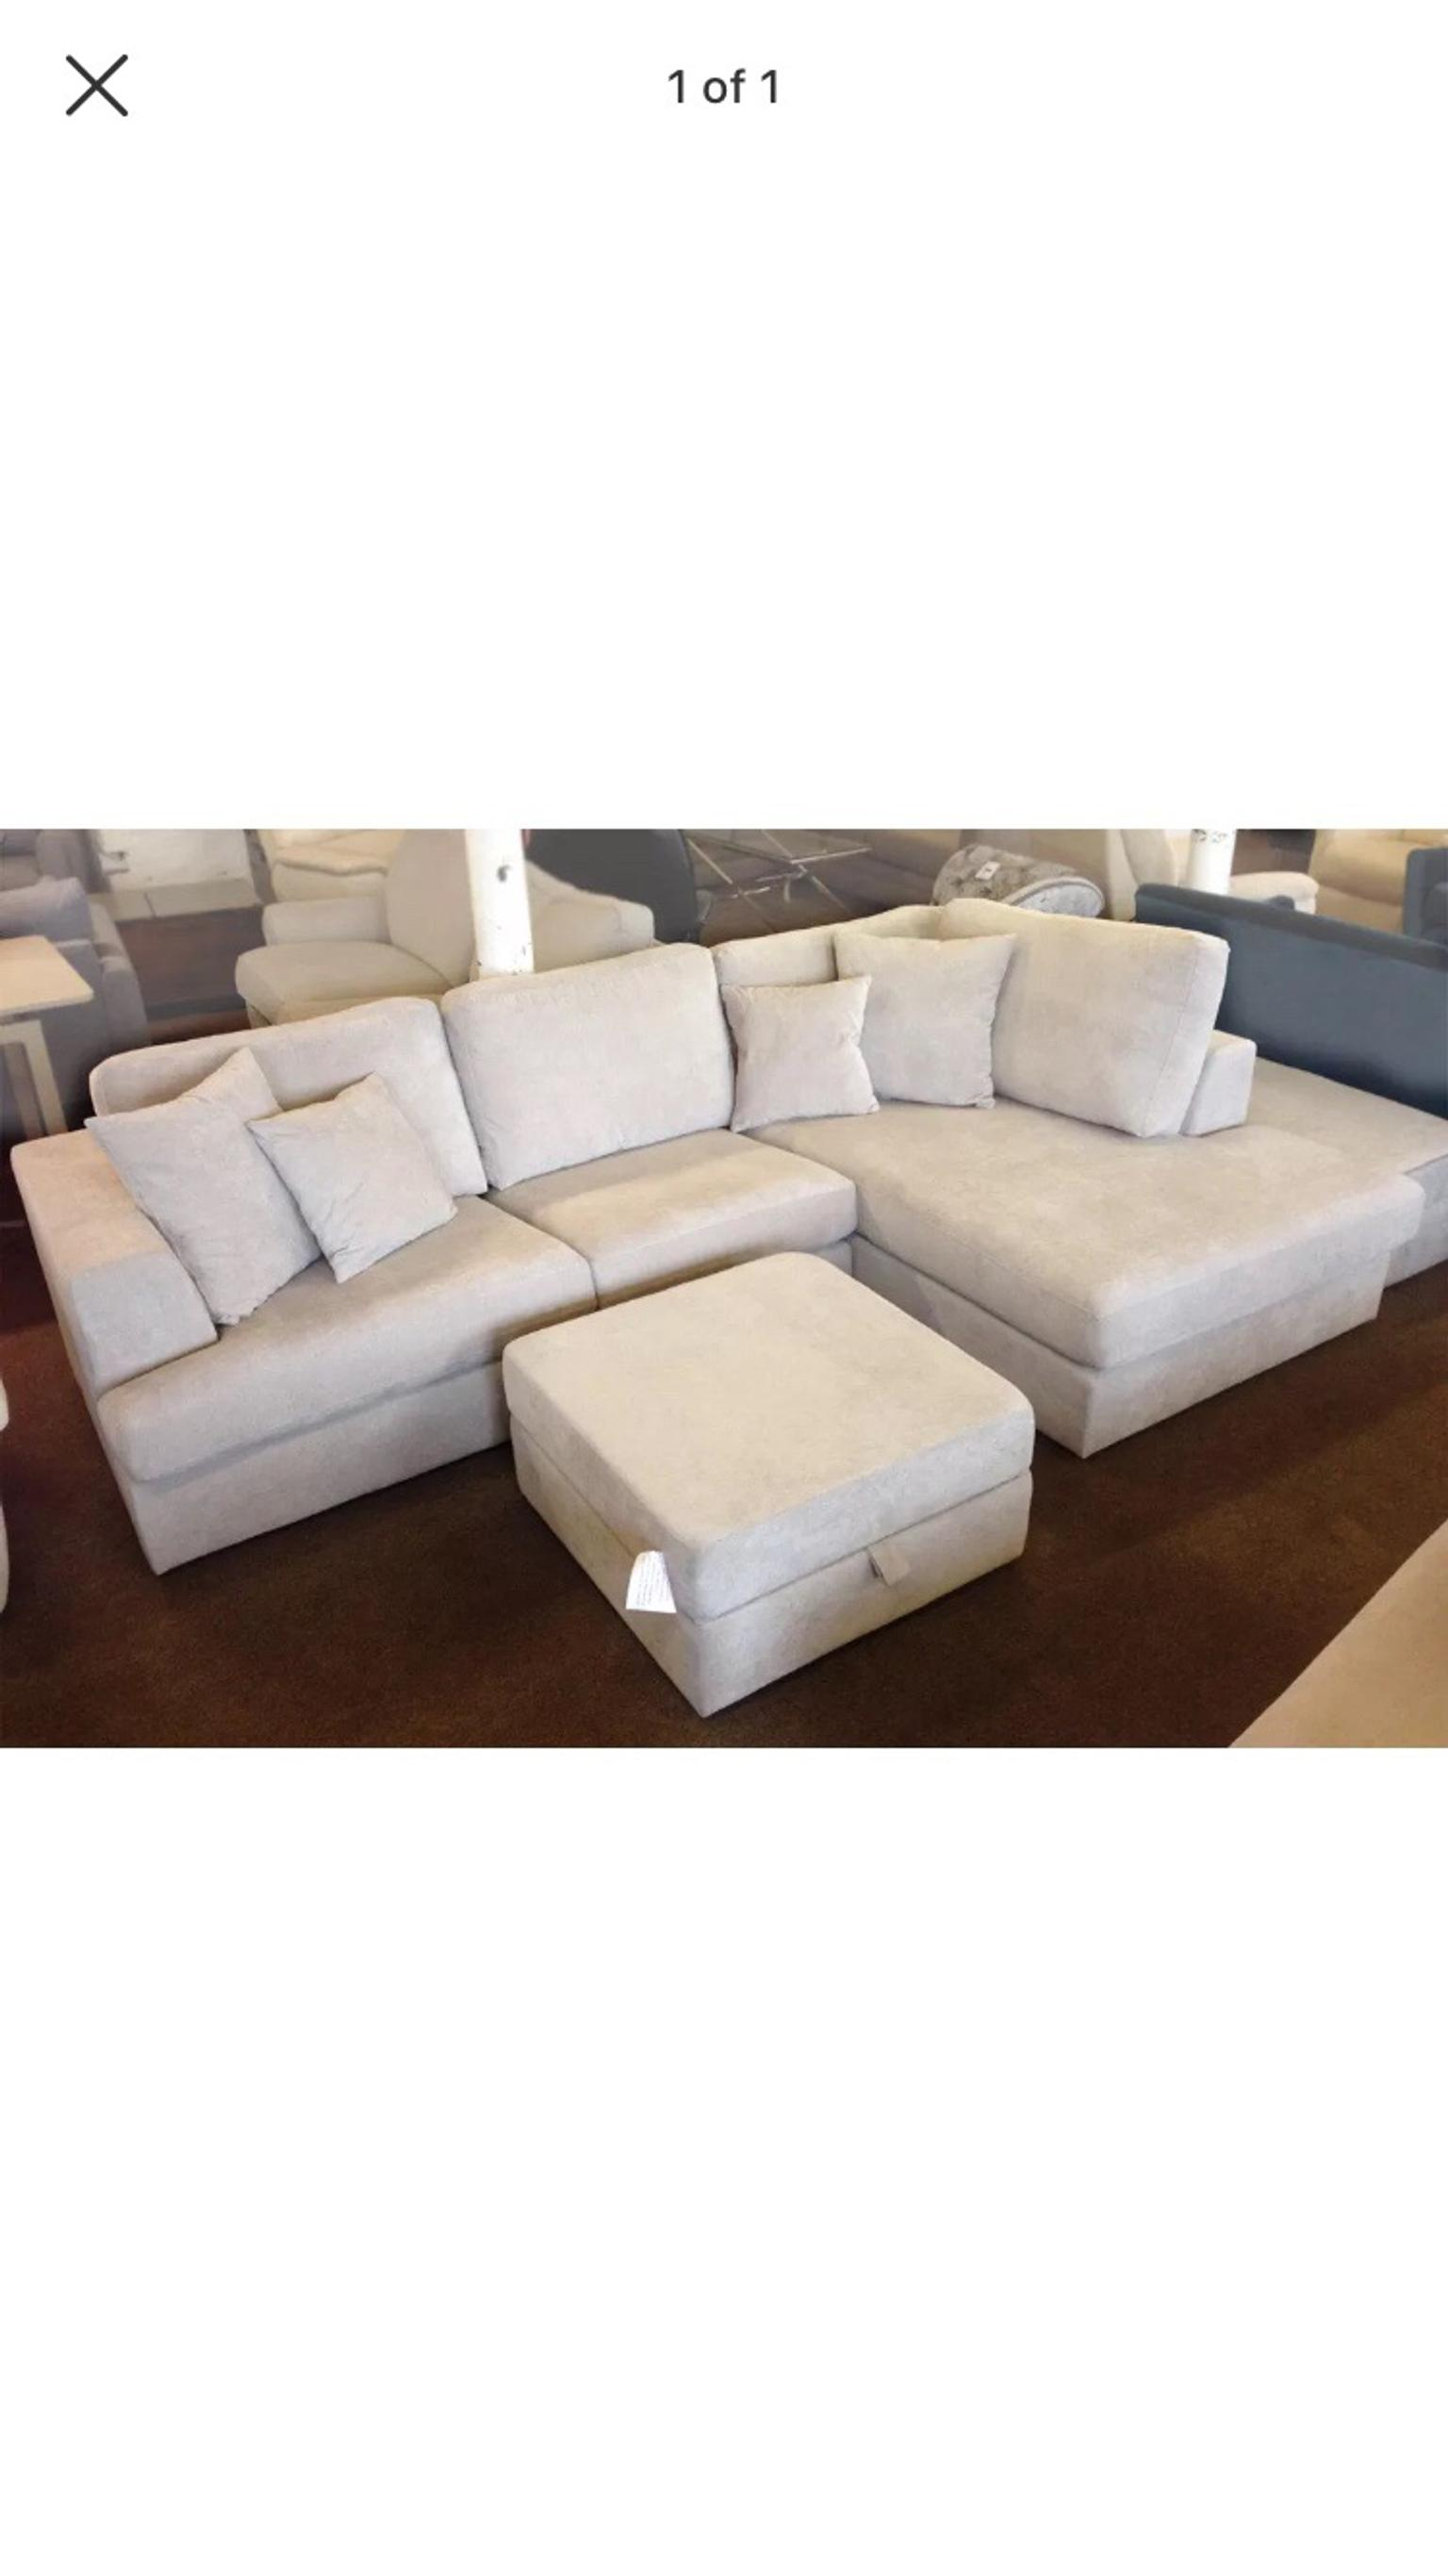 Next Stratus Iii Corner Sofa Silver Grey In Tq1 Torquay For 775 00 For Sale Shpock